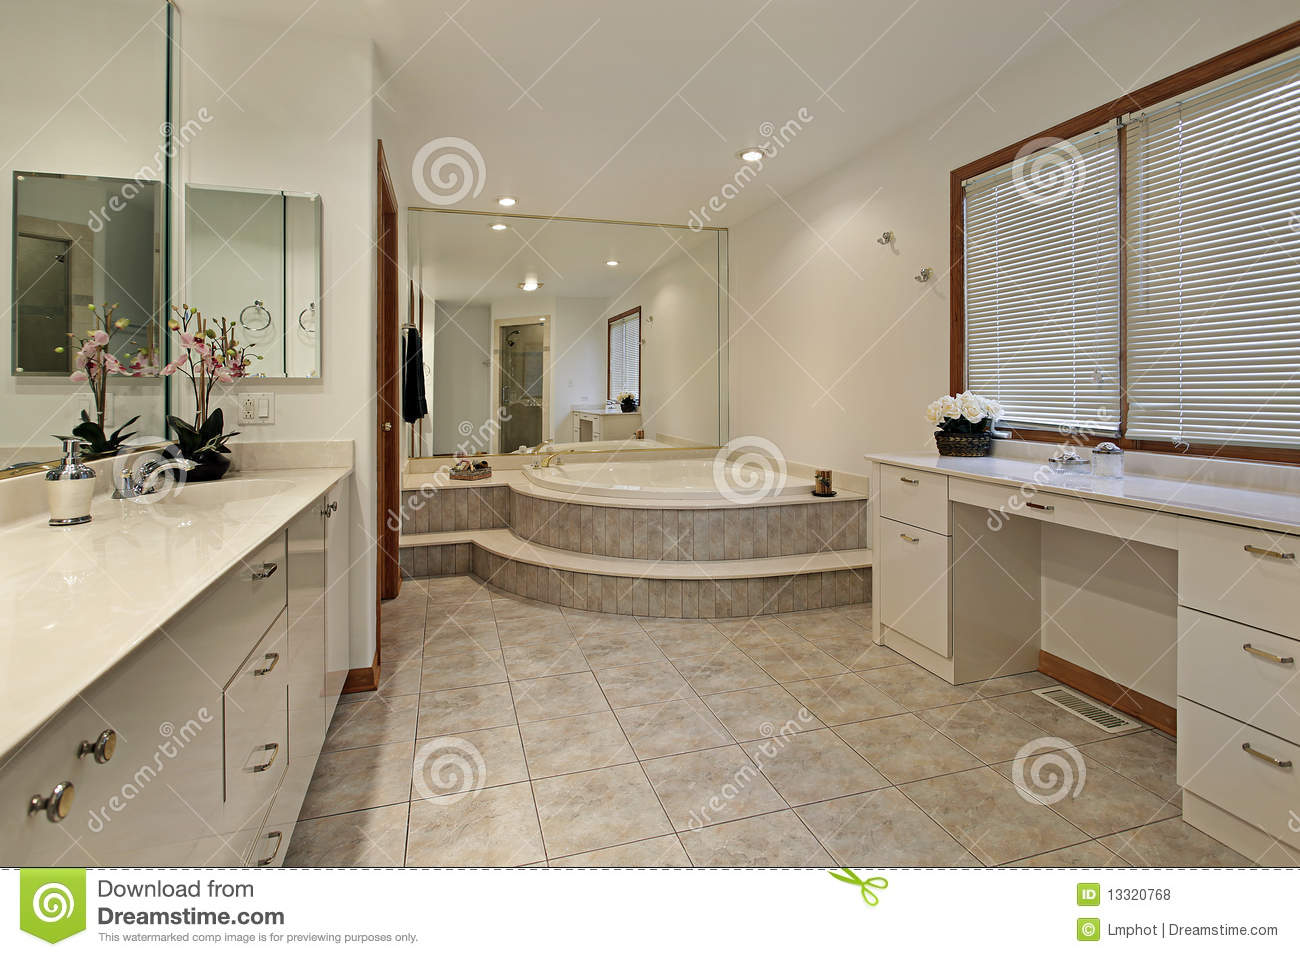 Master Bath With Step Up Tub Stock Photo - Image of decorate, shower ...